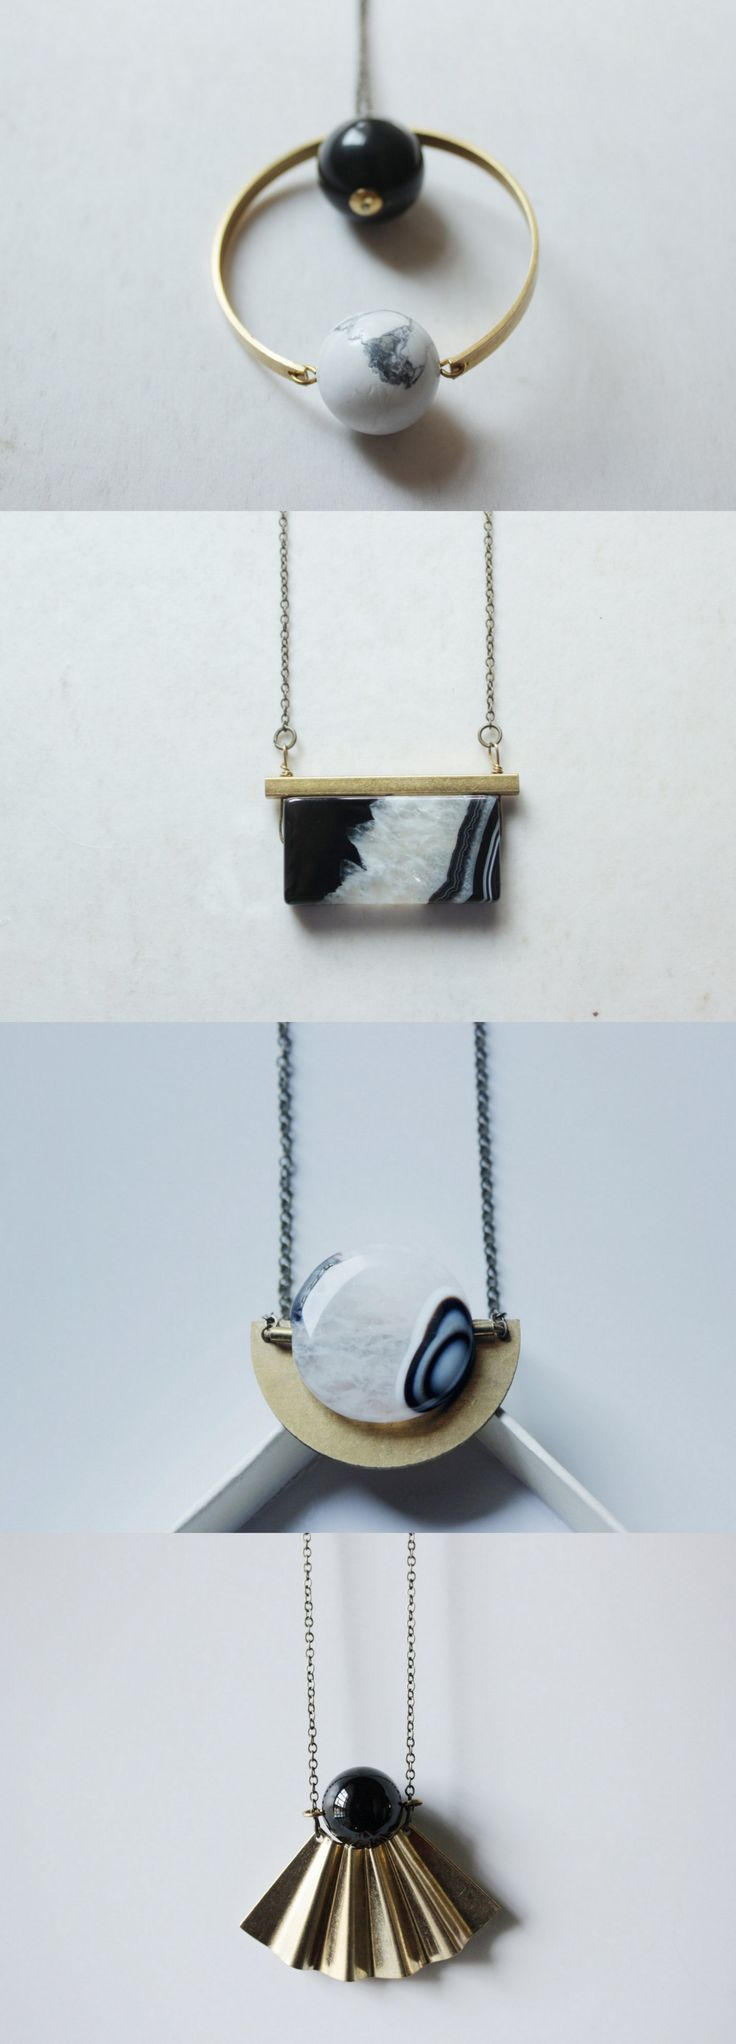 Geometric necklace gemstone necklace black and white marble necklace long……